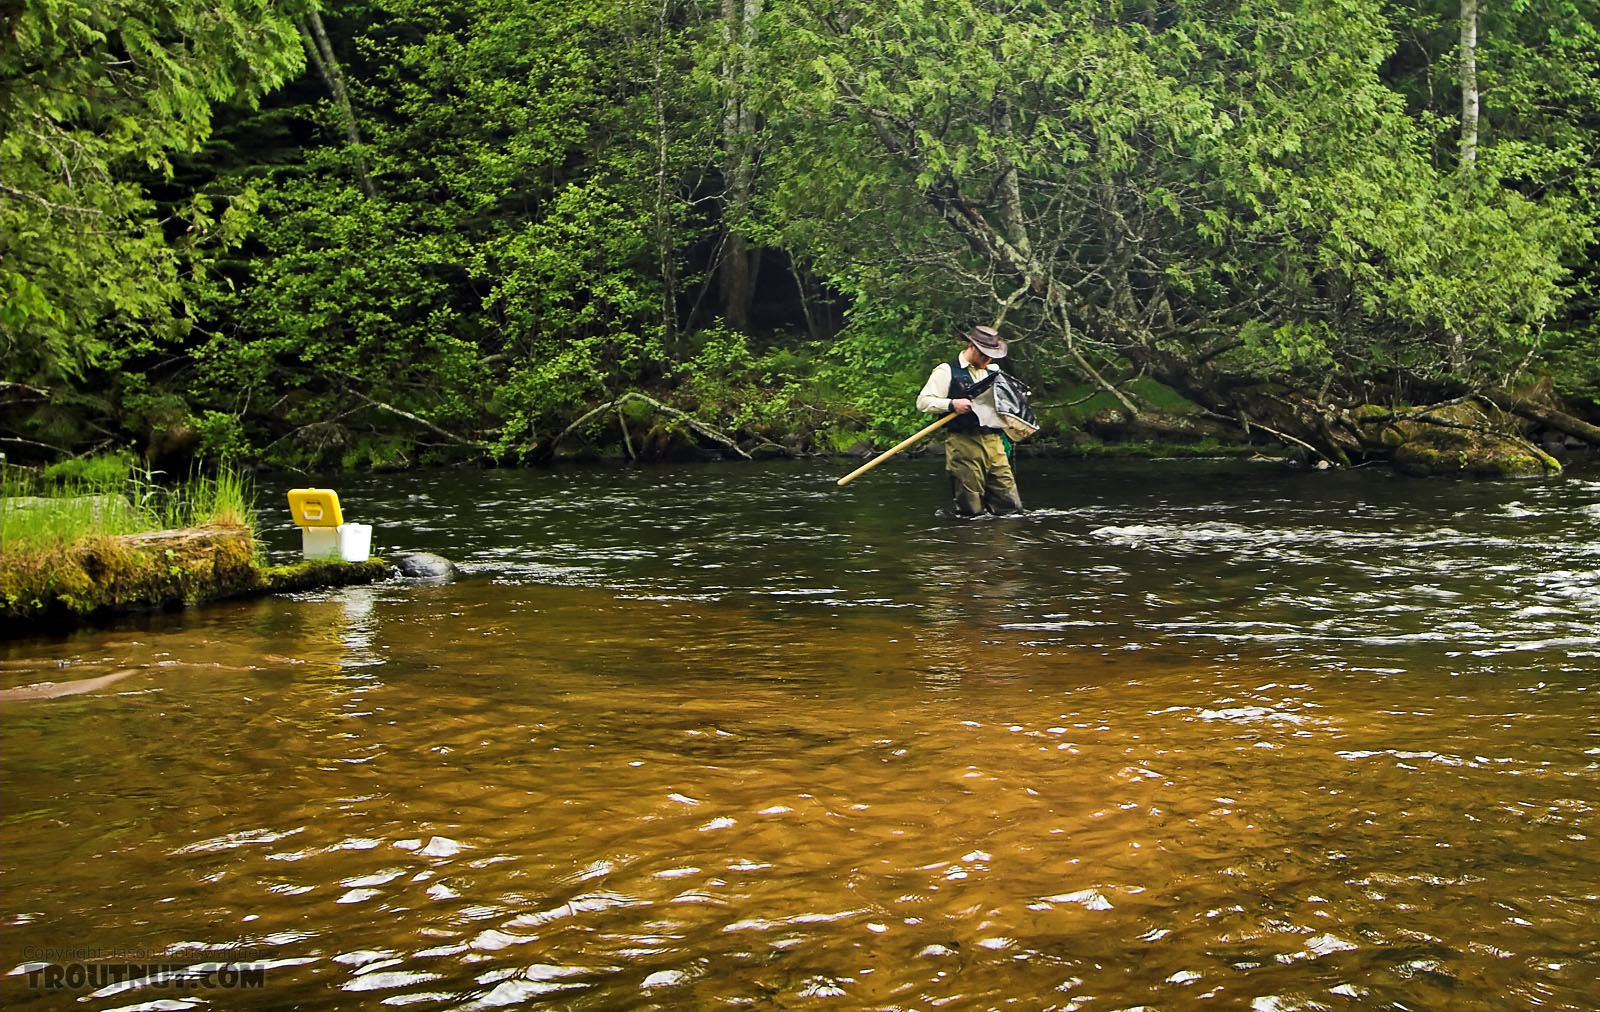 Here I'm looking through the sampling net for interesting nymphs, some of which ended up on this site. From the Bois Brule River in Wisconsin.